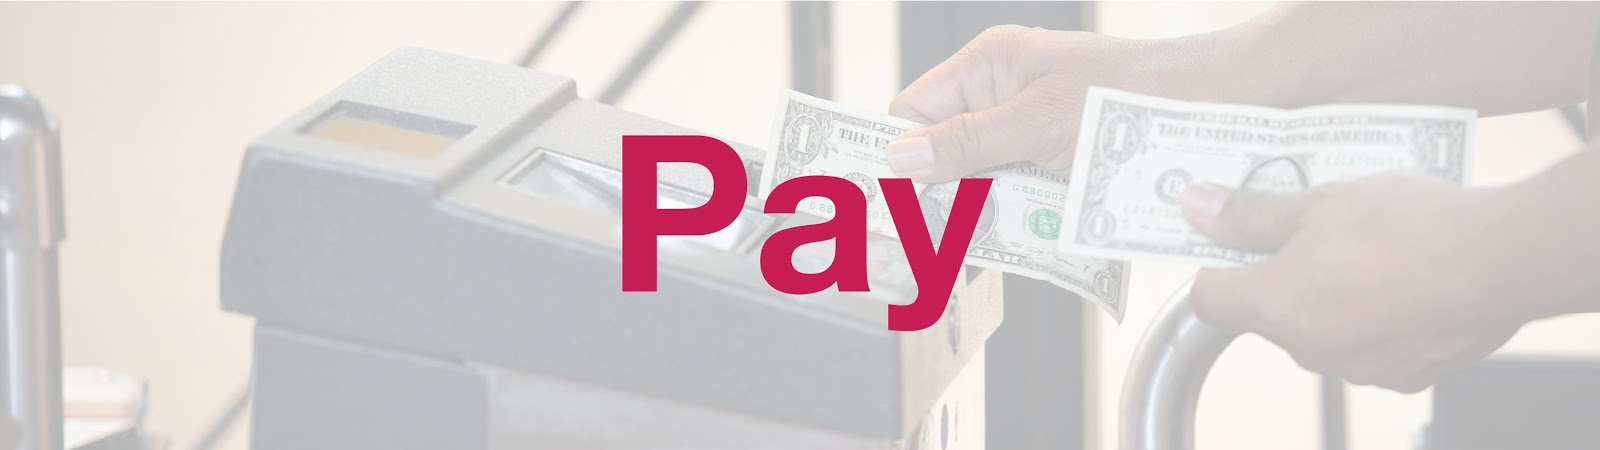 Pay (Image: Farebox)